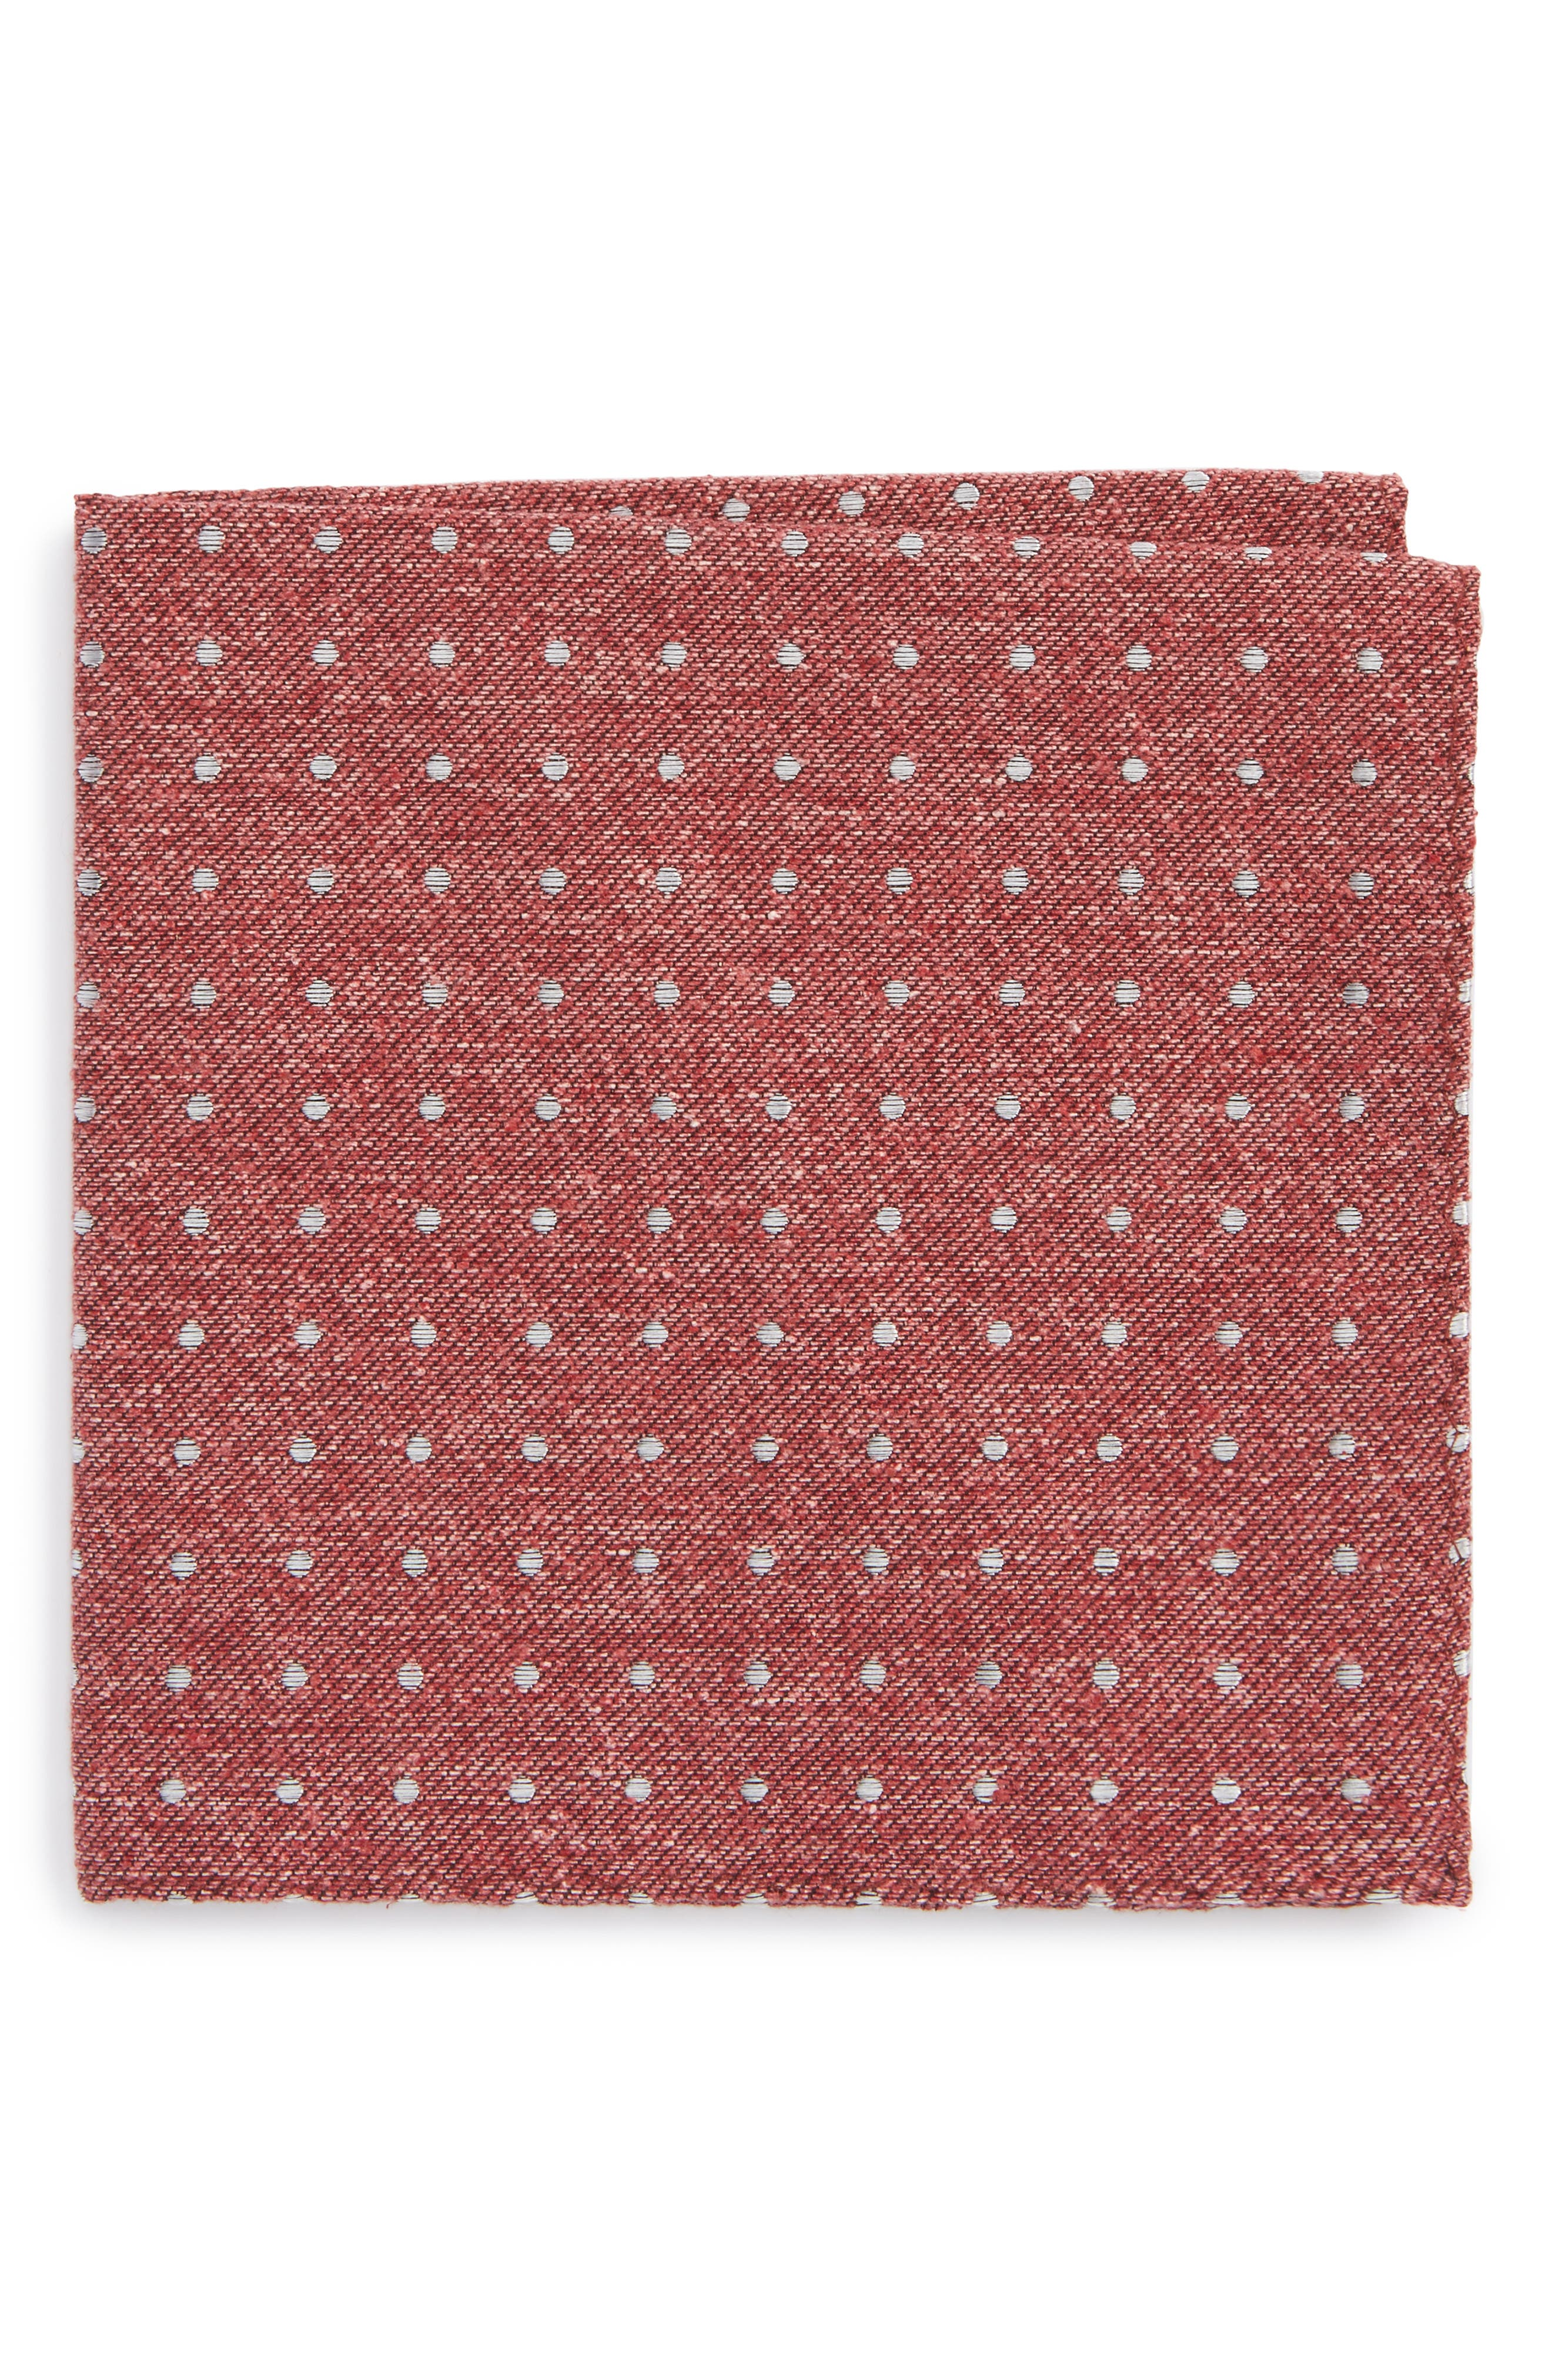 Knotted Dots Silk Pocket Square,                             Main thumbnail 1, color,                             600